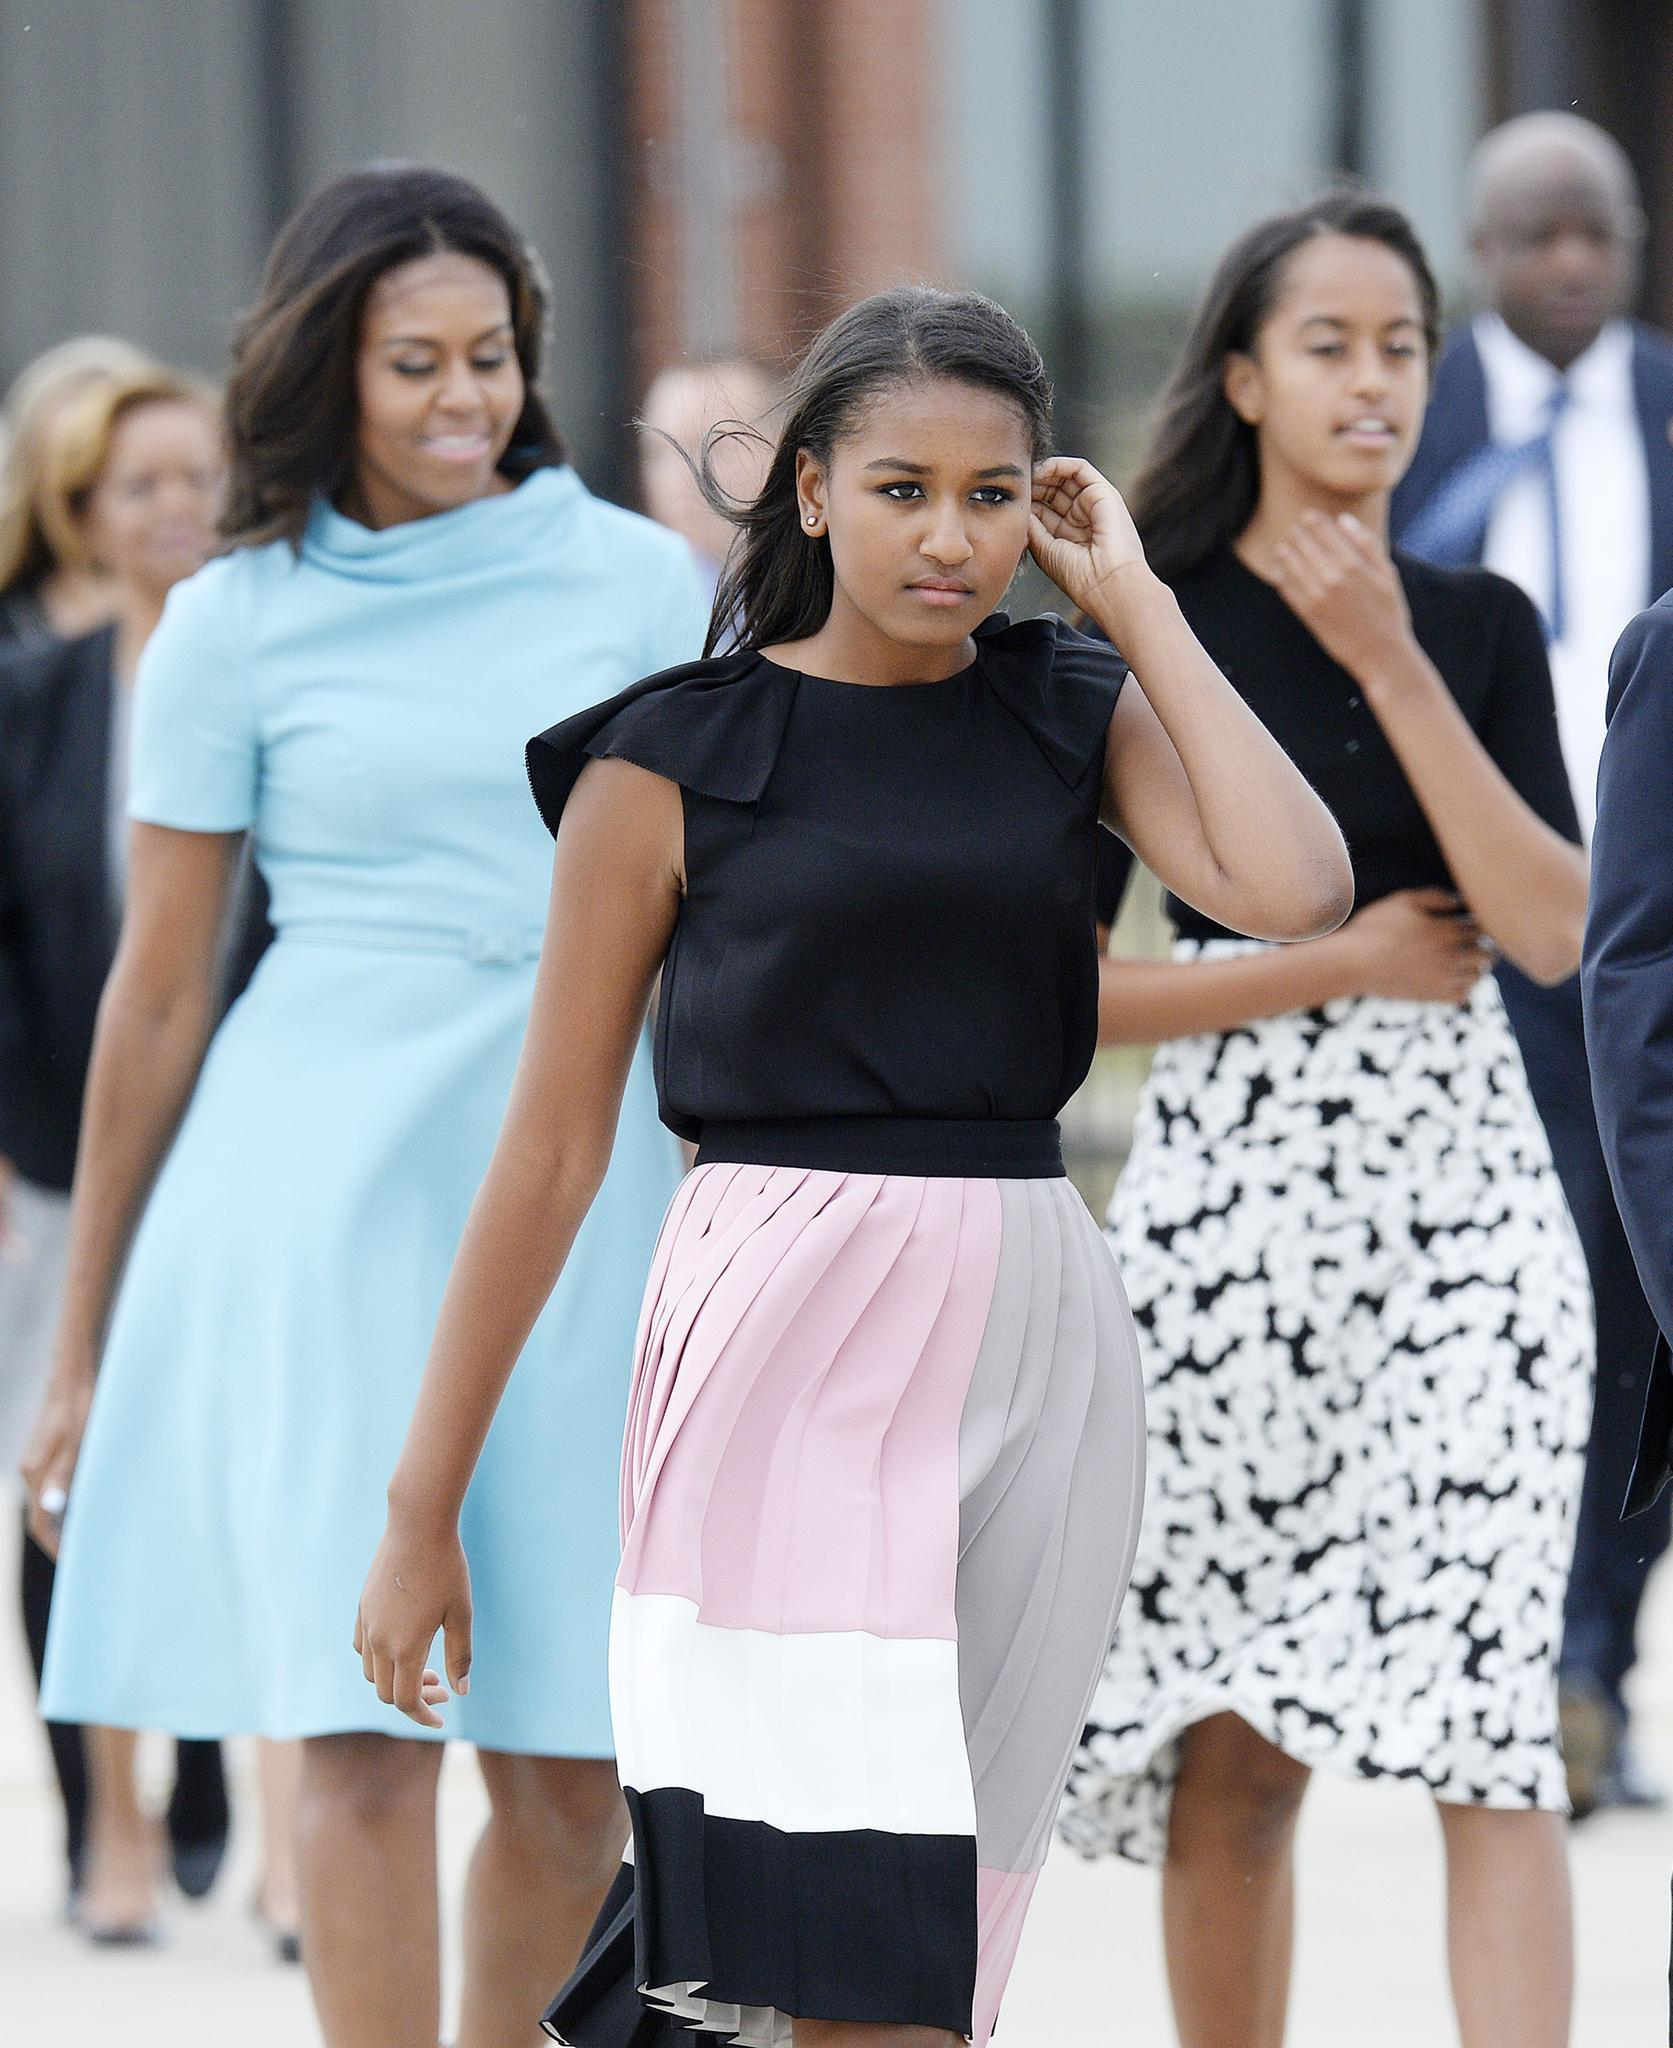 Sasha Obama, Michelle Obama, Malia Obama